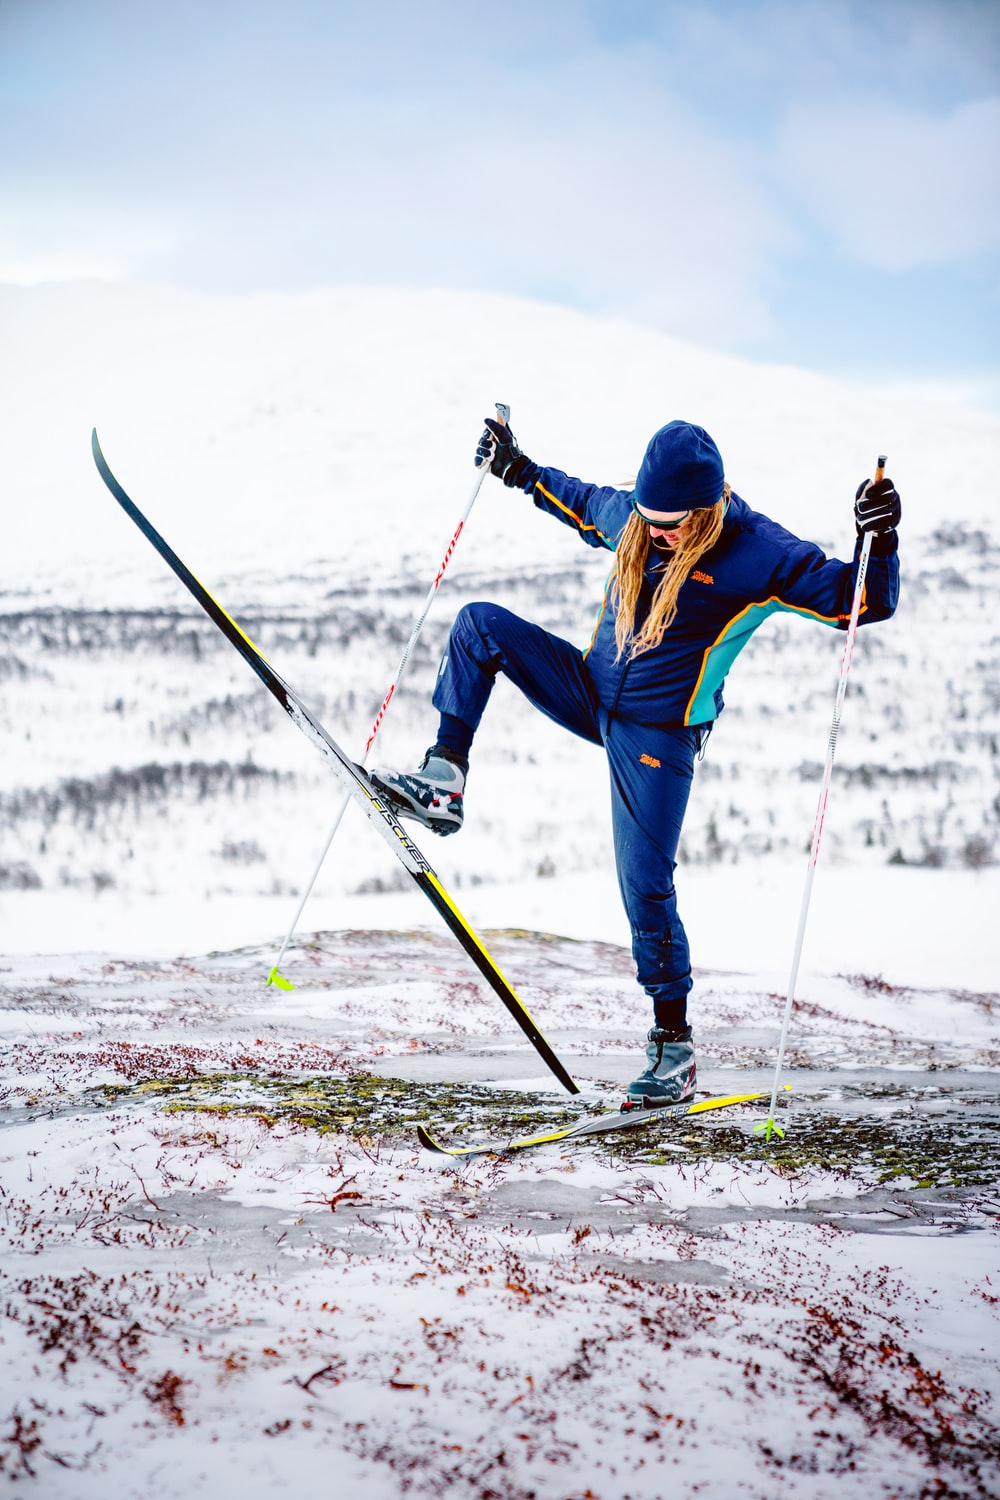 man in blue jacket and blue pants riding on ski blades on snow covered ground during